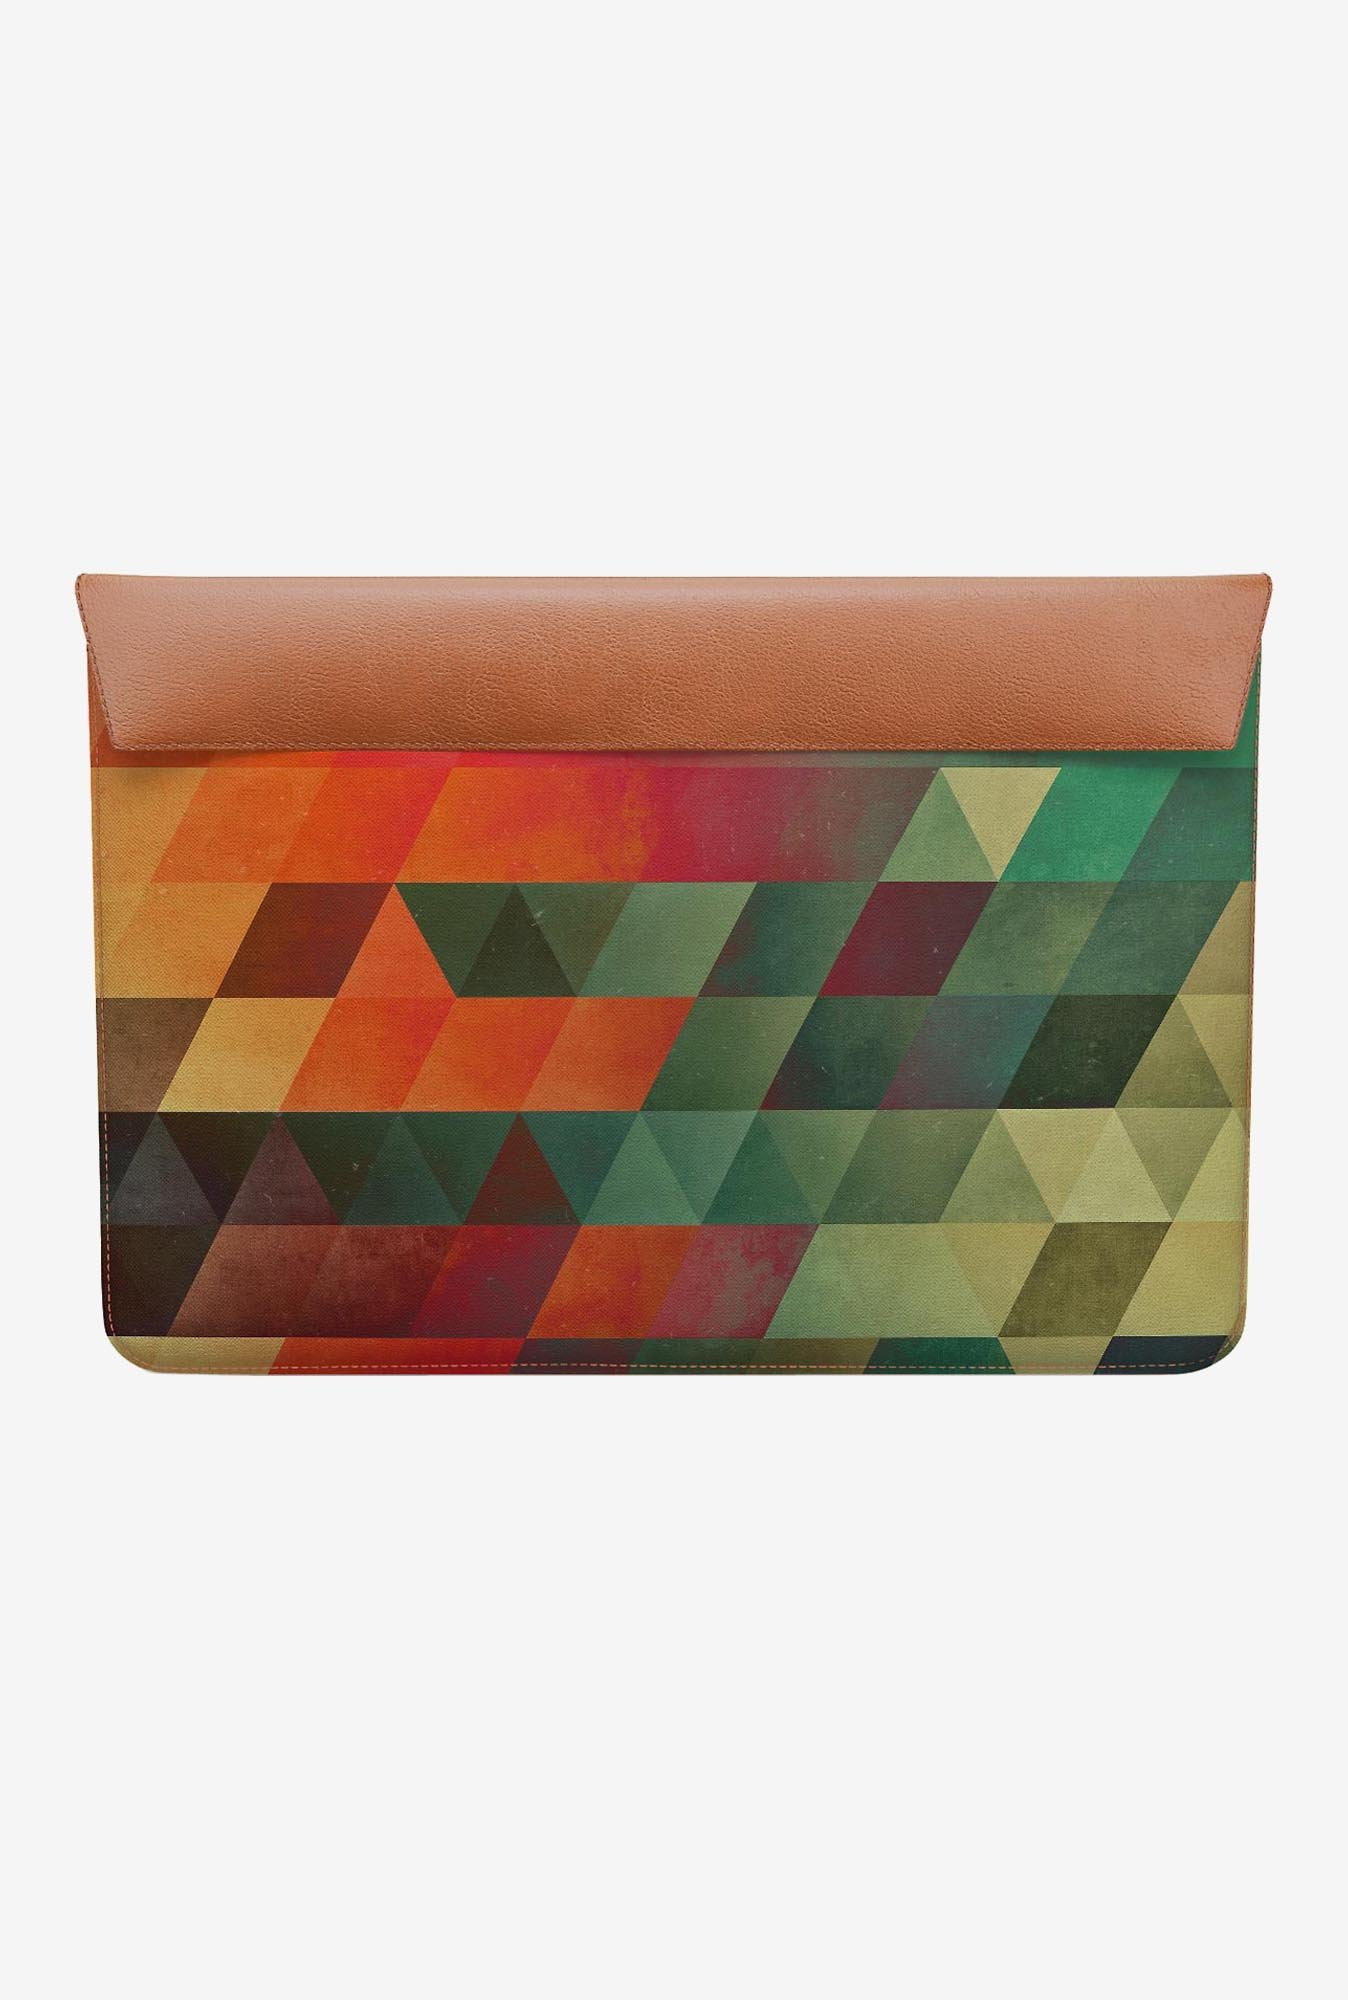 DailyObjects Yrrynngg Zkyy MacBook Air 11 Envelope Sleeve